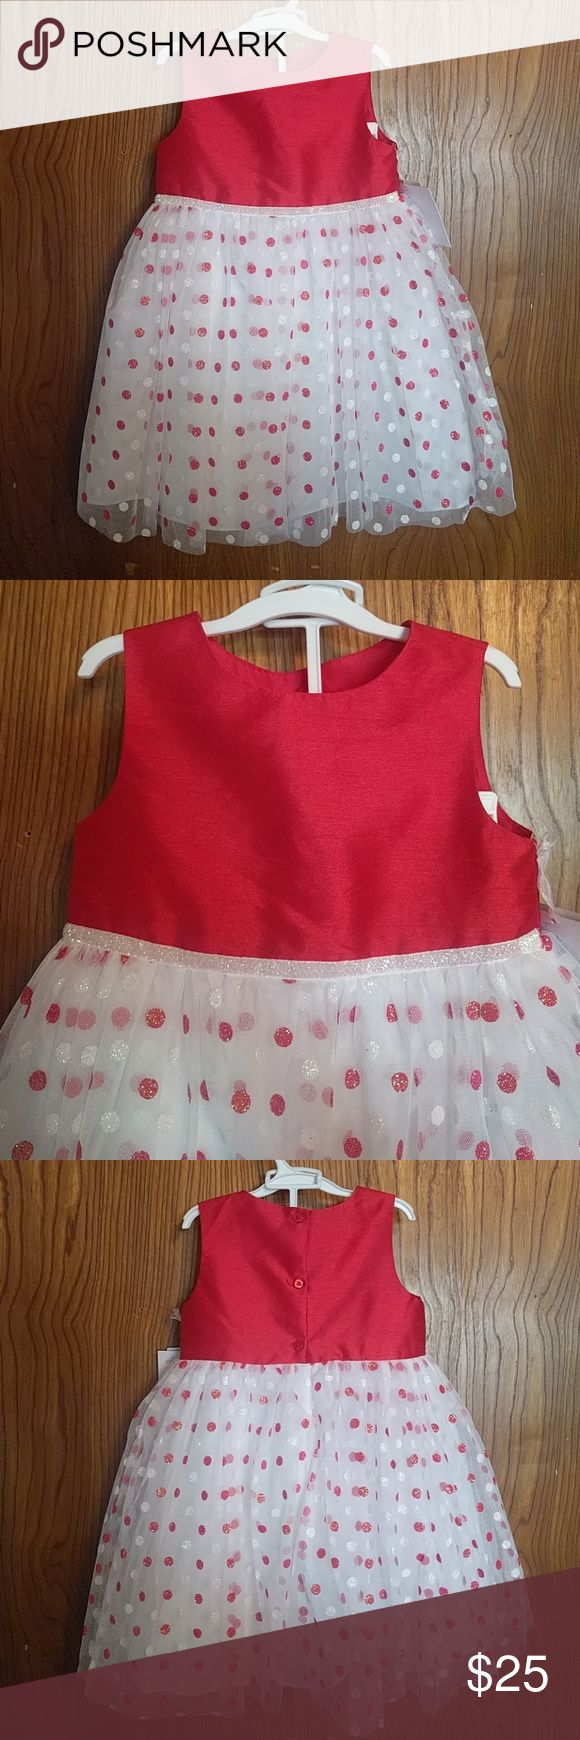 Marmellata special occasion dress Special occasion dress, maybe Christmas. Red taffeta top. Red and white polka dot crinoline skirt with sparkly piping on waist. Buttons on back. Skirt has 4 layers, 2 crinoline, (one with dots, other plain) , then liner, then liner with bunched up crinoline to make the dress pouf. Comes with white bloomers. Super cute. Marmellata Dresses Formal